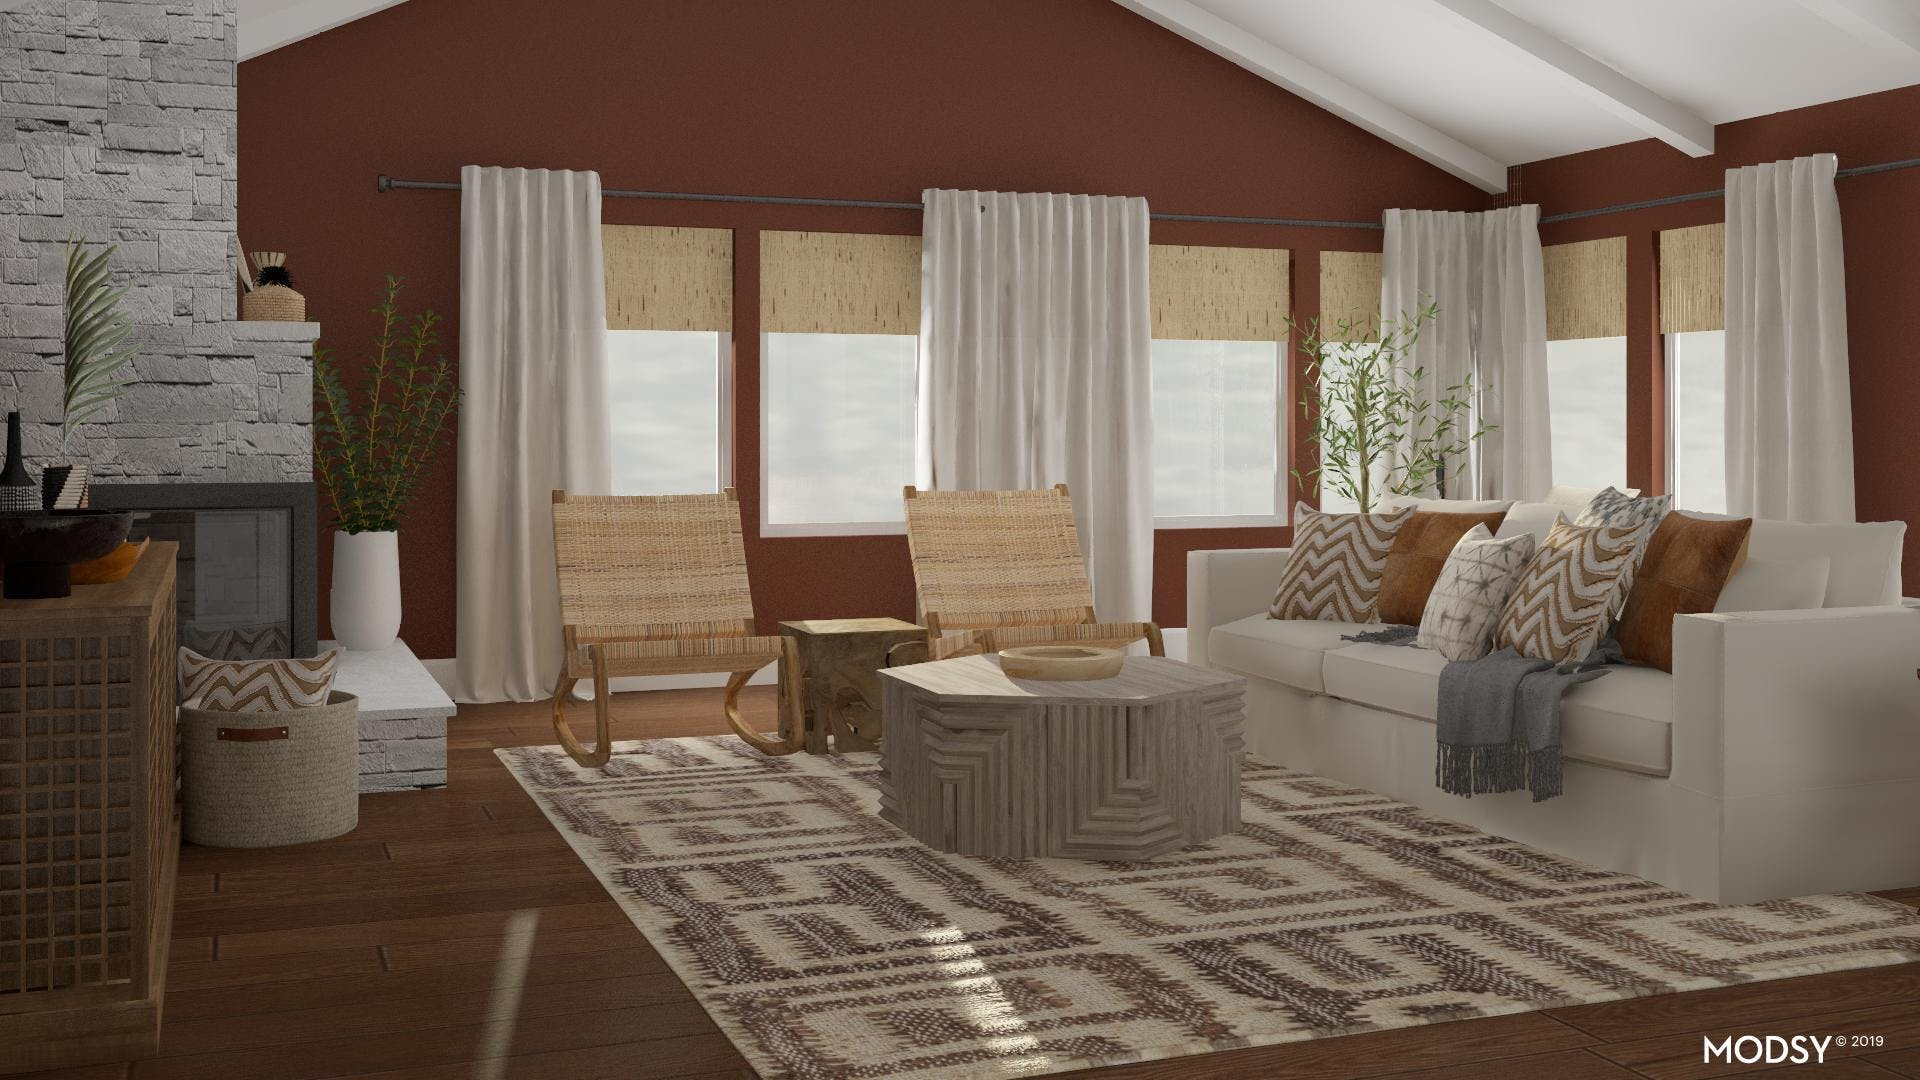 Shady Rustic Living Room With a Restful Vibe